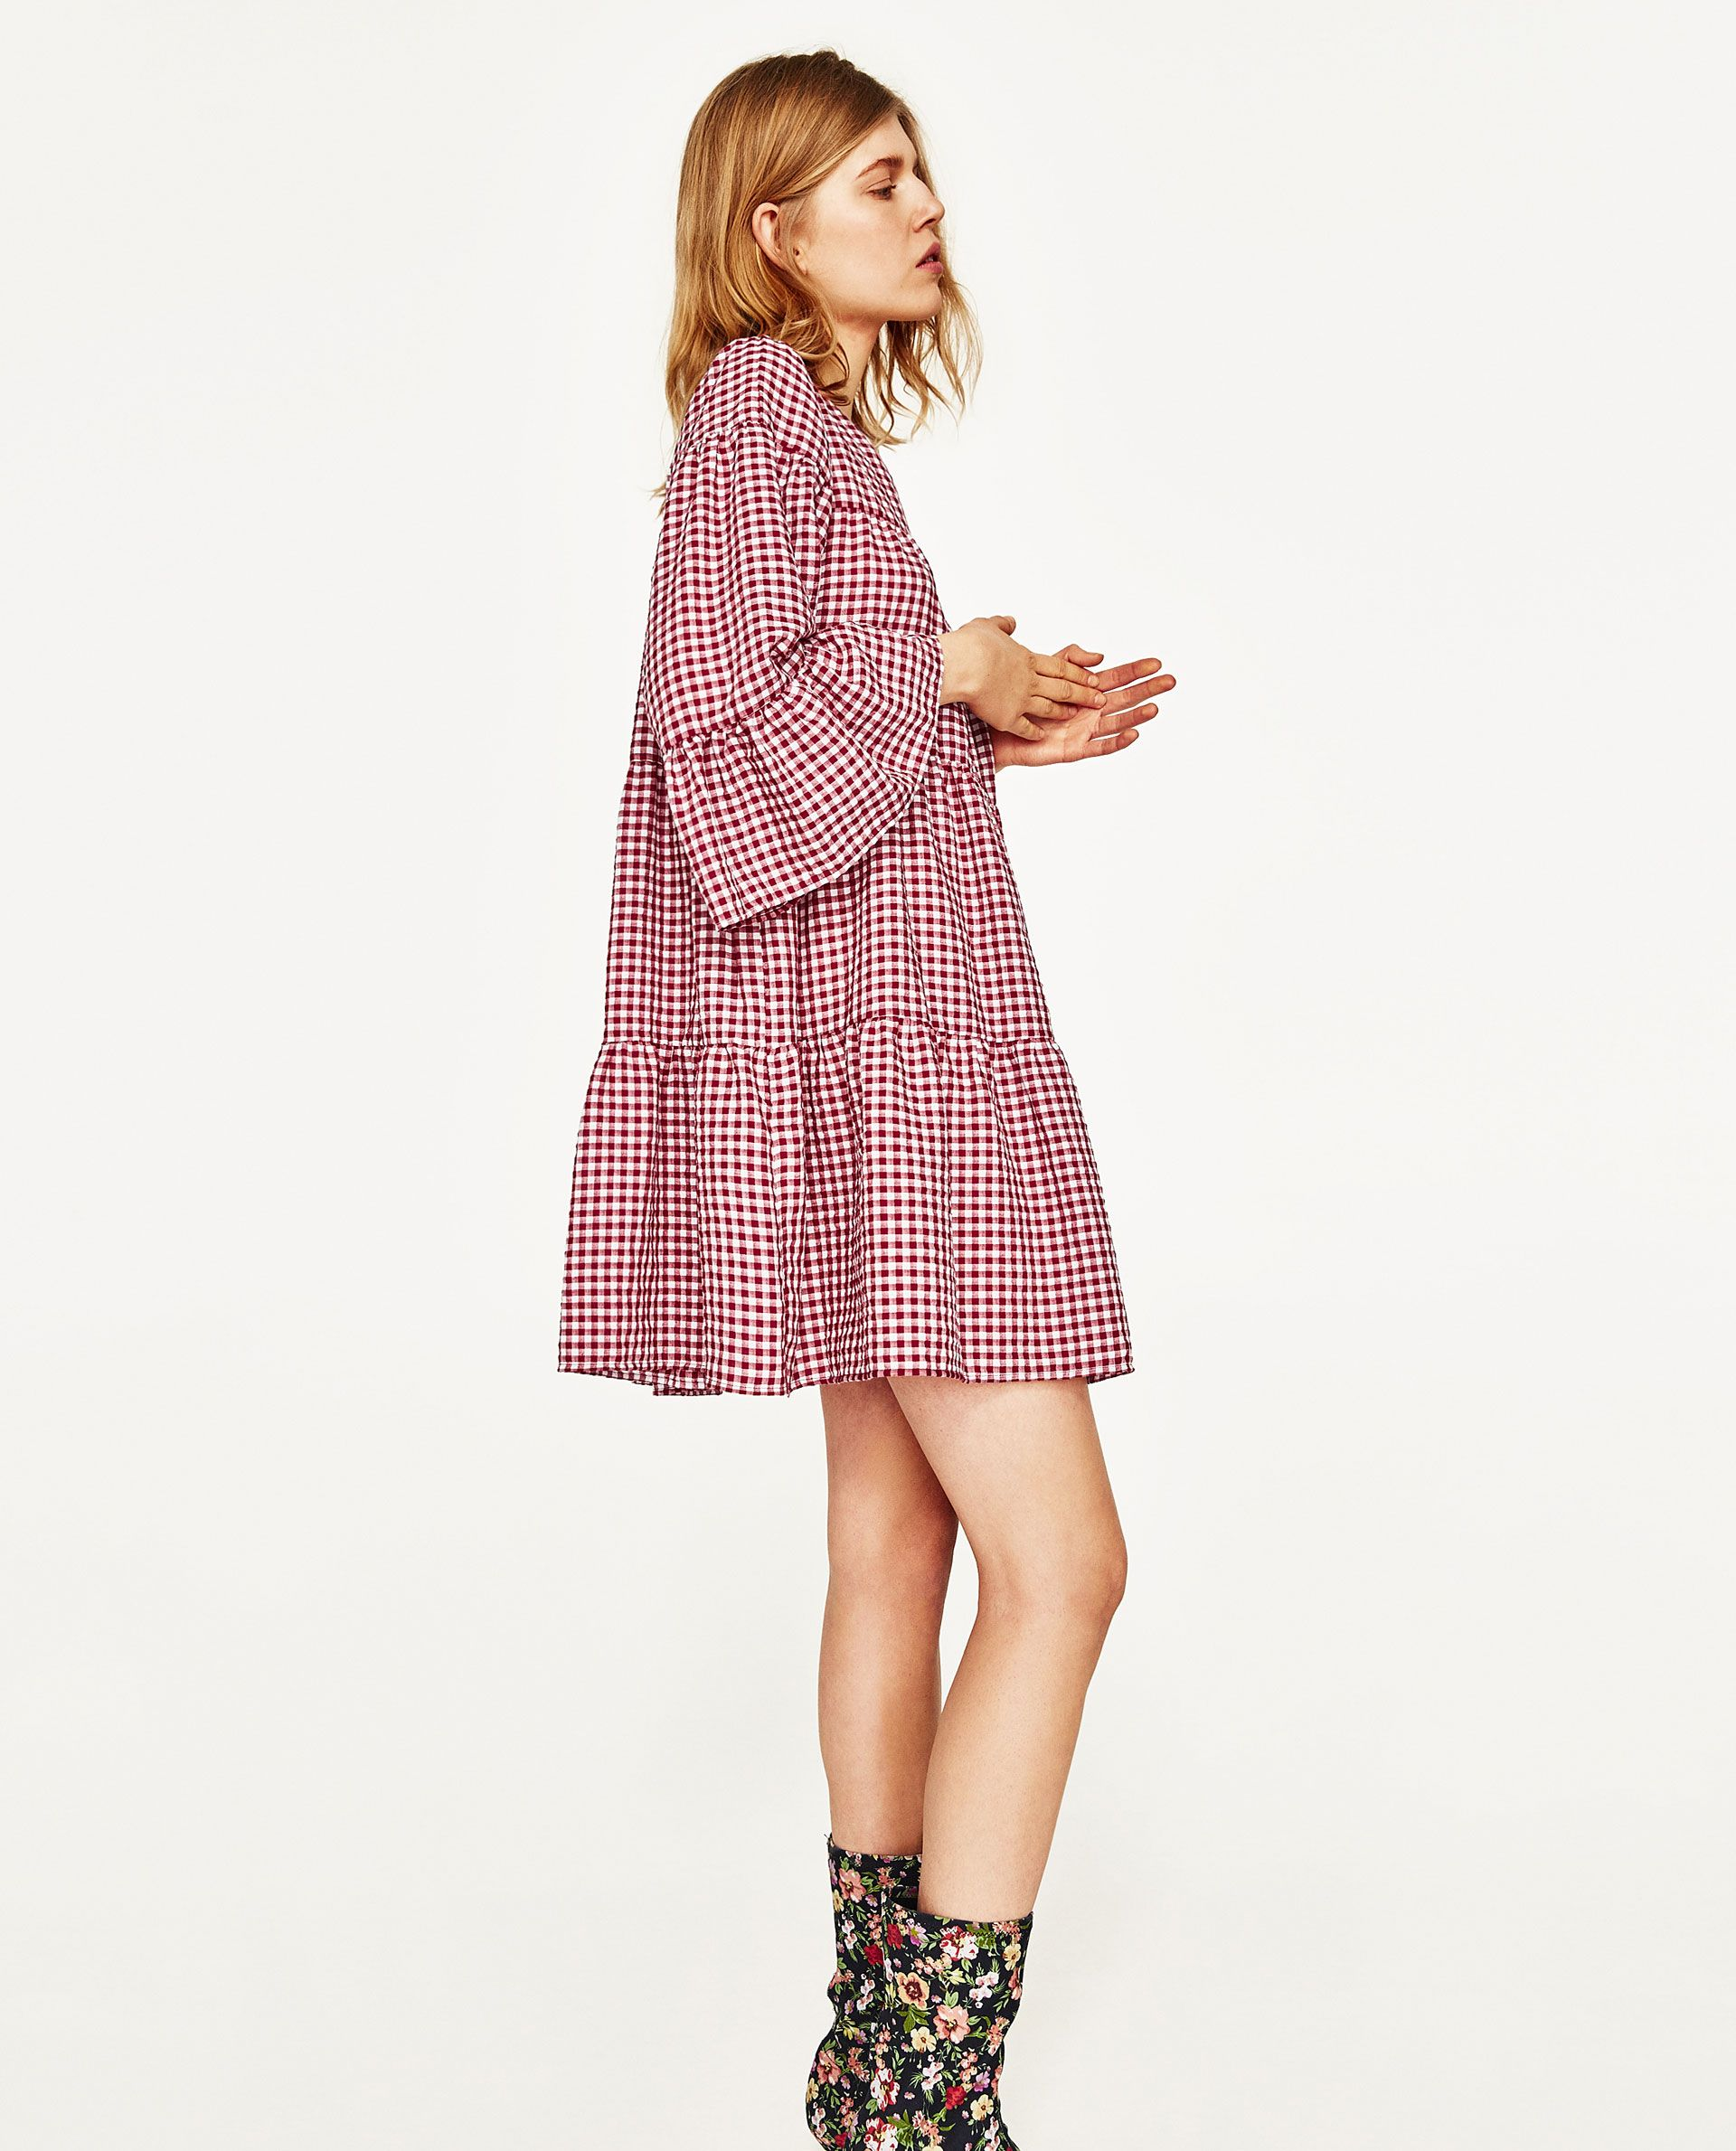 image 5 of gingham mini dress from zara | outfit, outfit